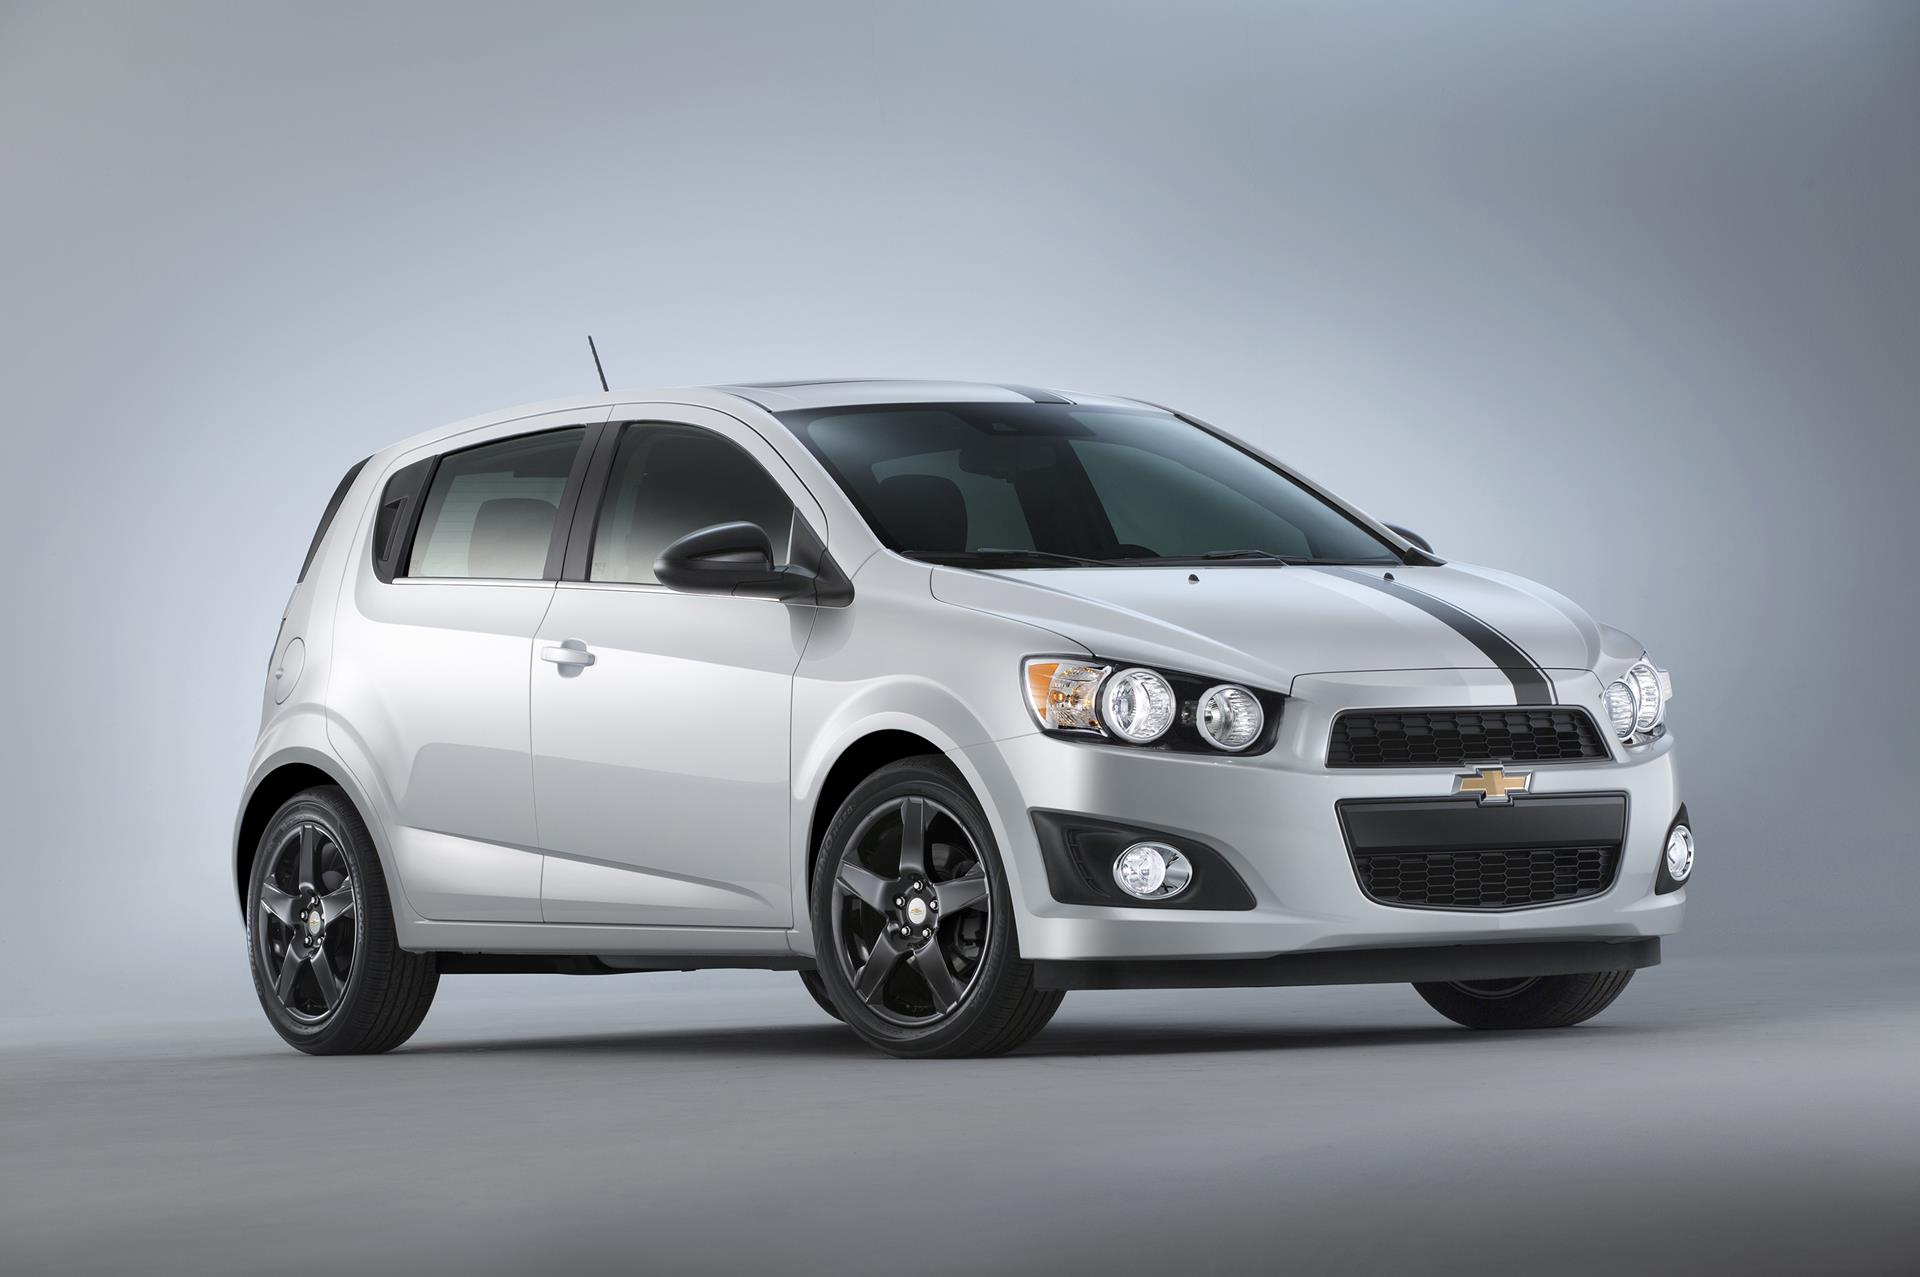 2014 Chevrolet Sonic Accessories Concept News And Information Silverado Engine Diagram Research Pricing